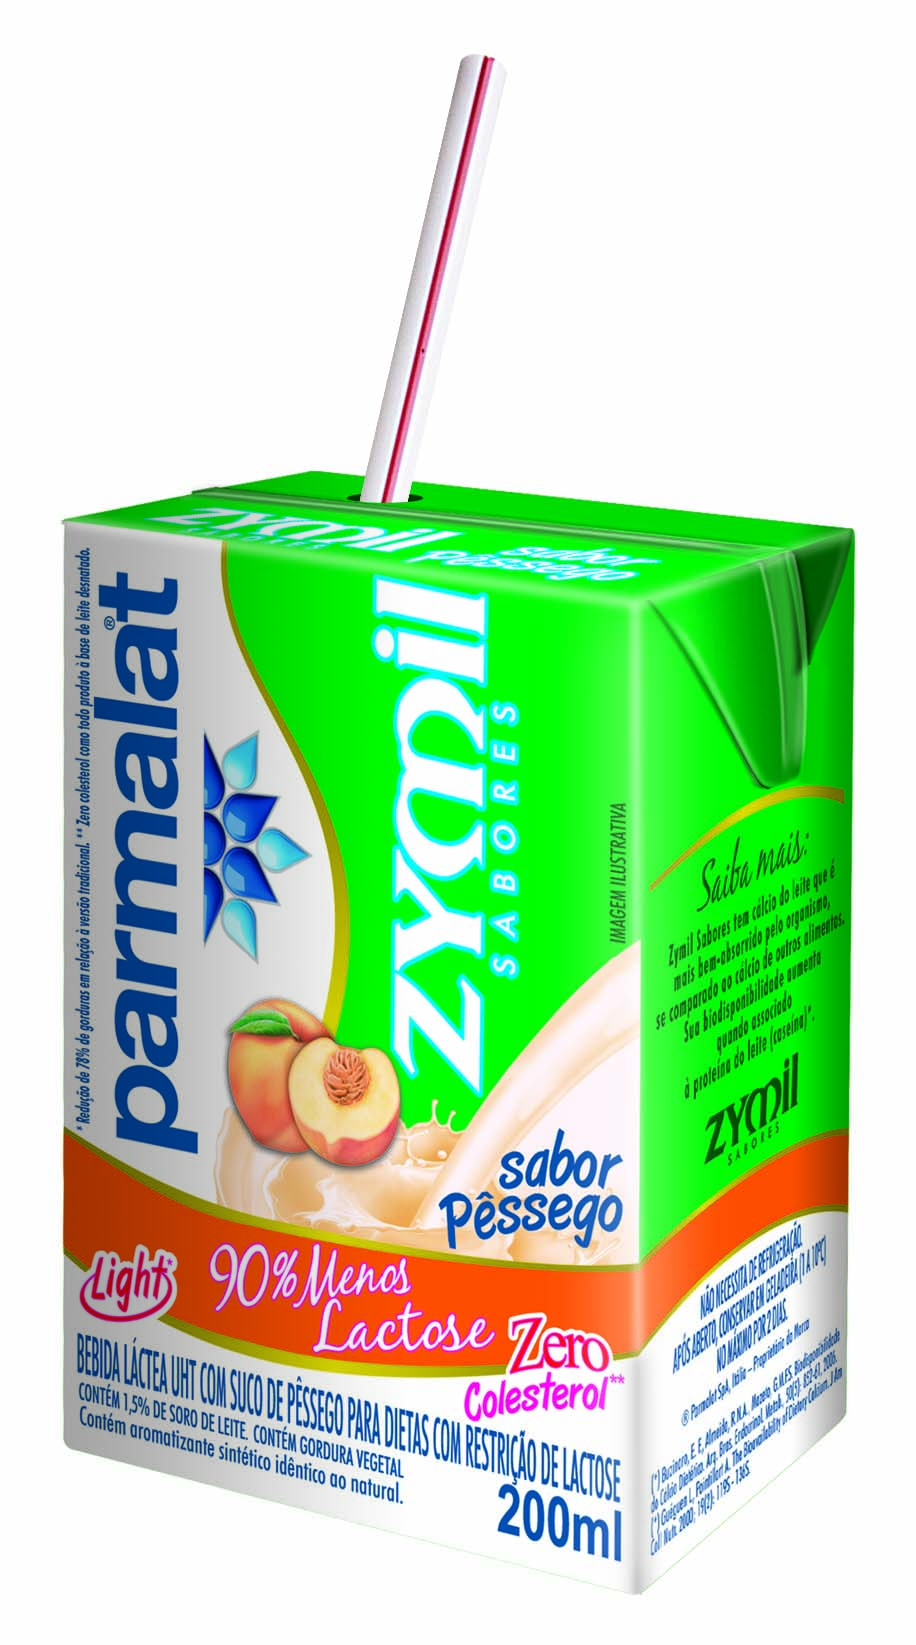 zymil-pessego-200ml-copy